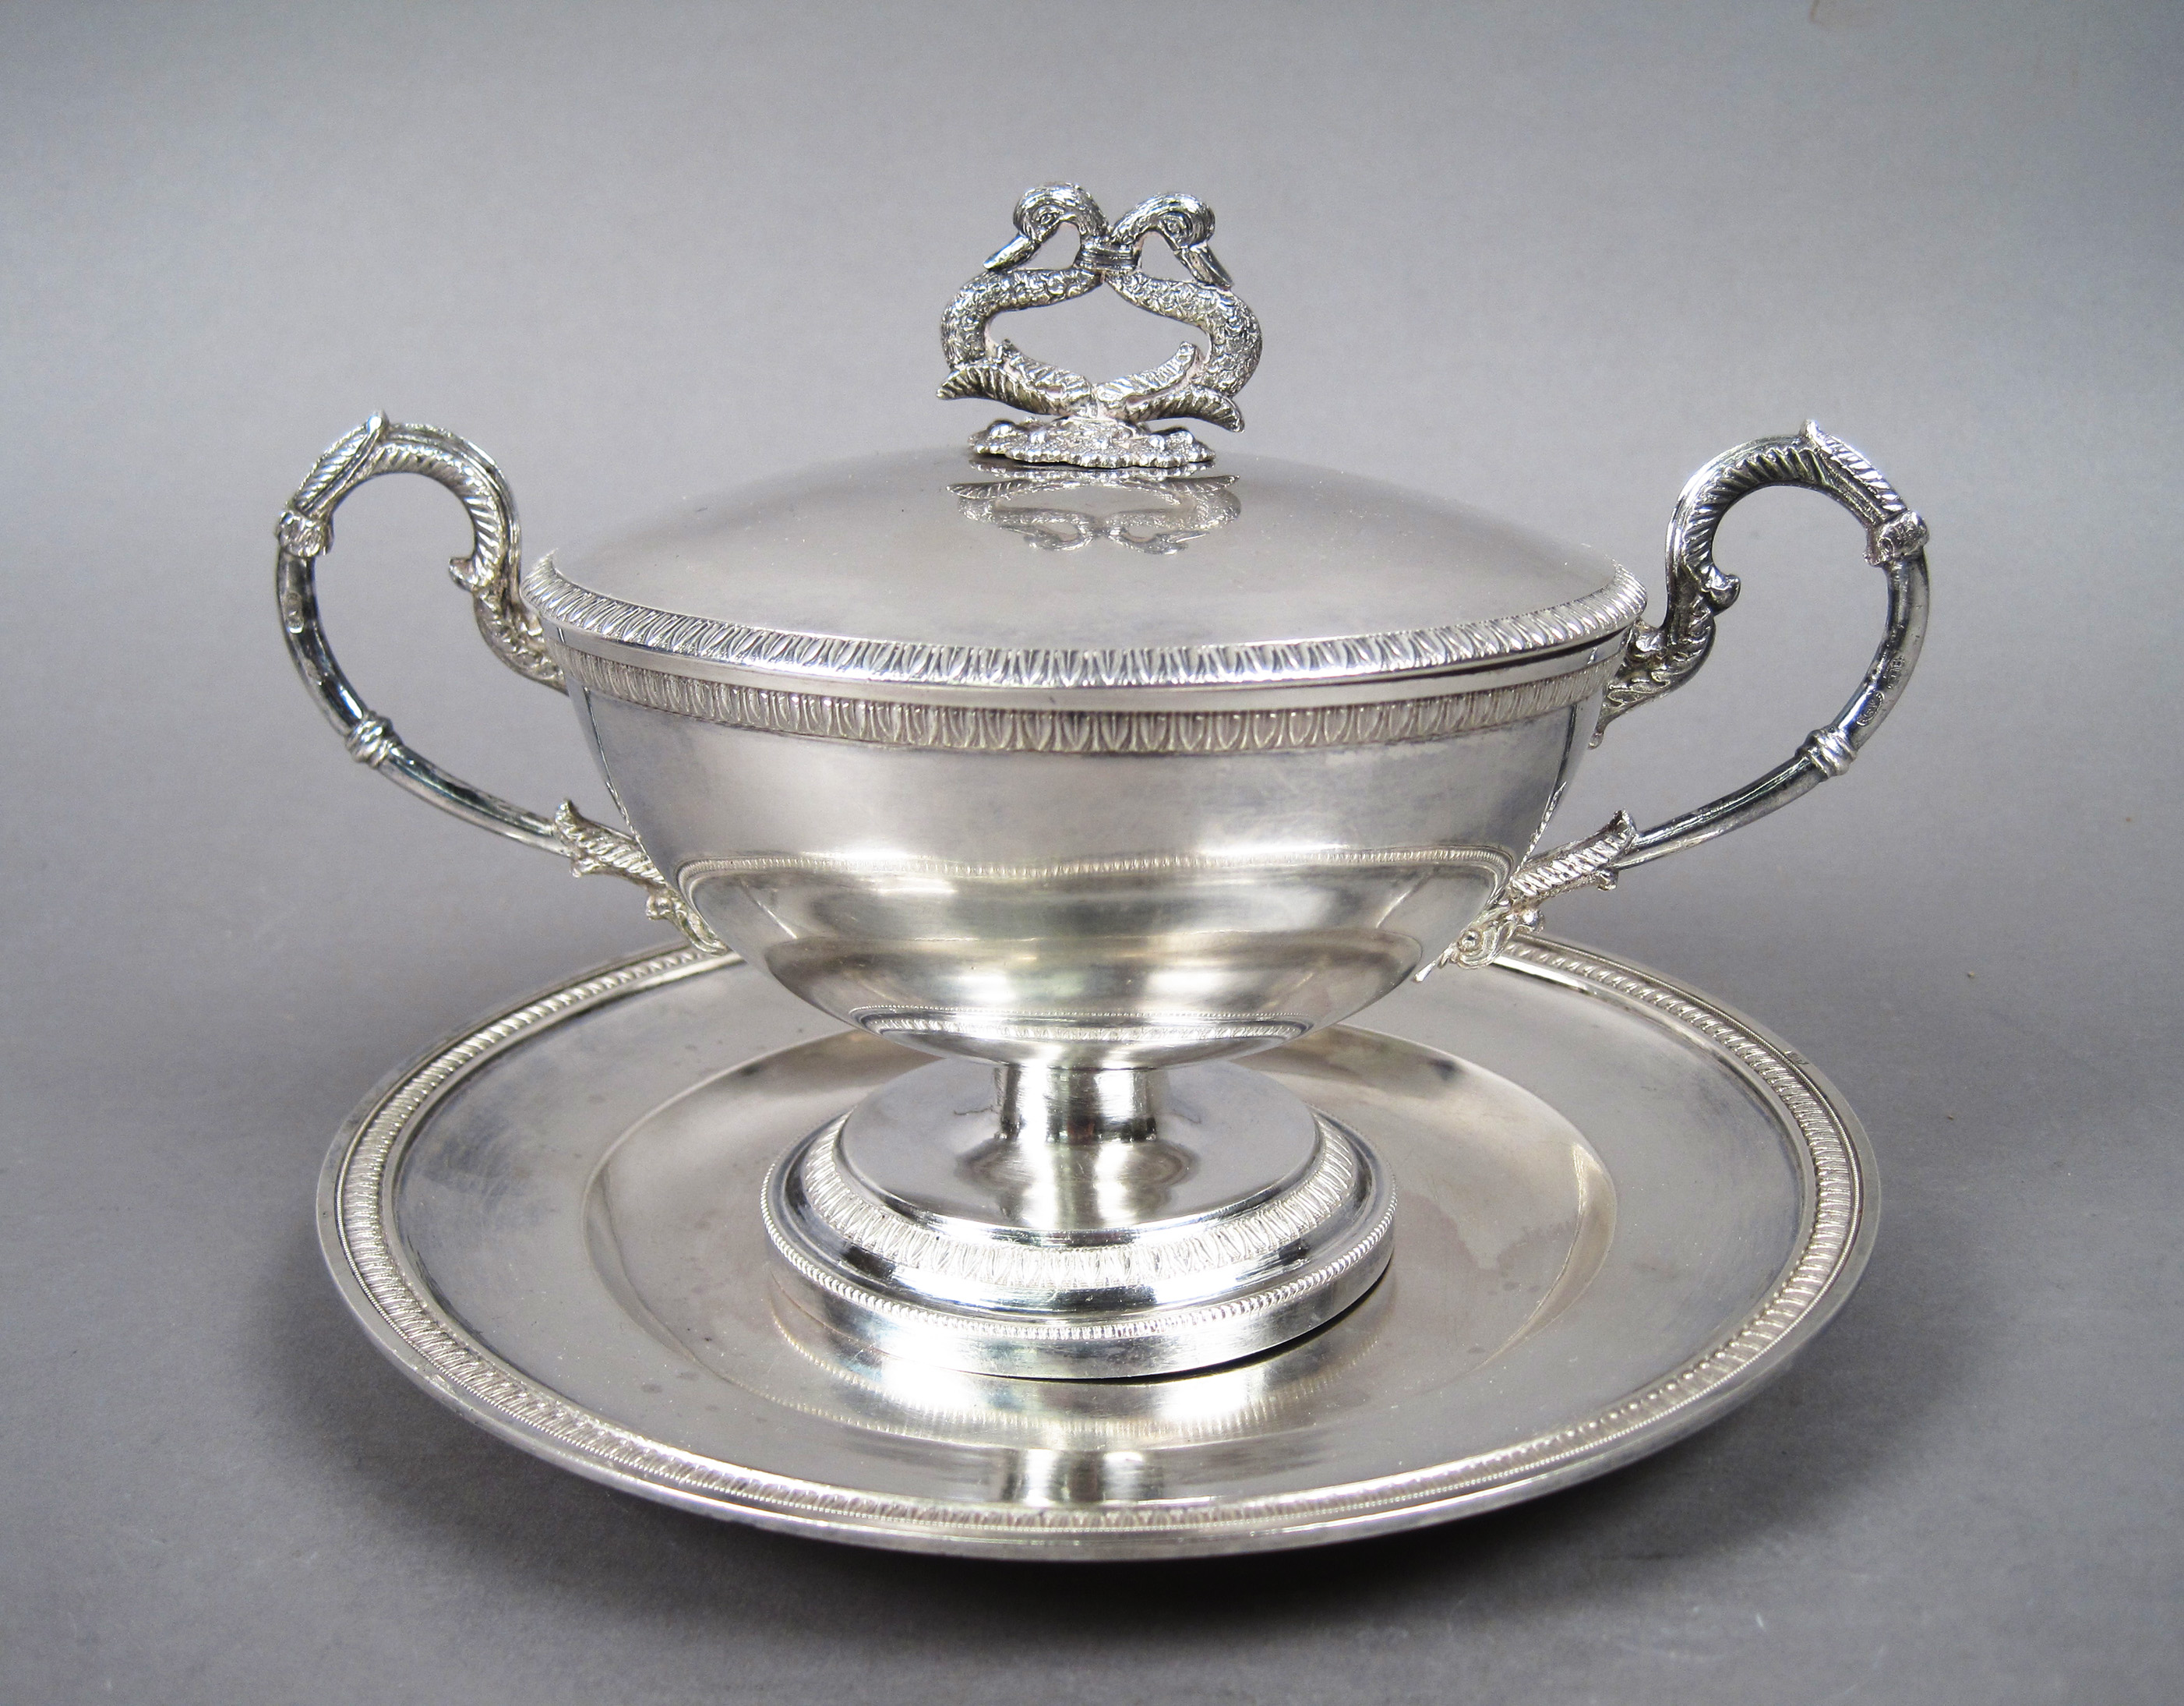 Antique Sterling Silver Covered Dish with Figural Swan Neck Handle